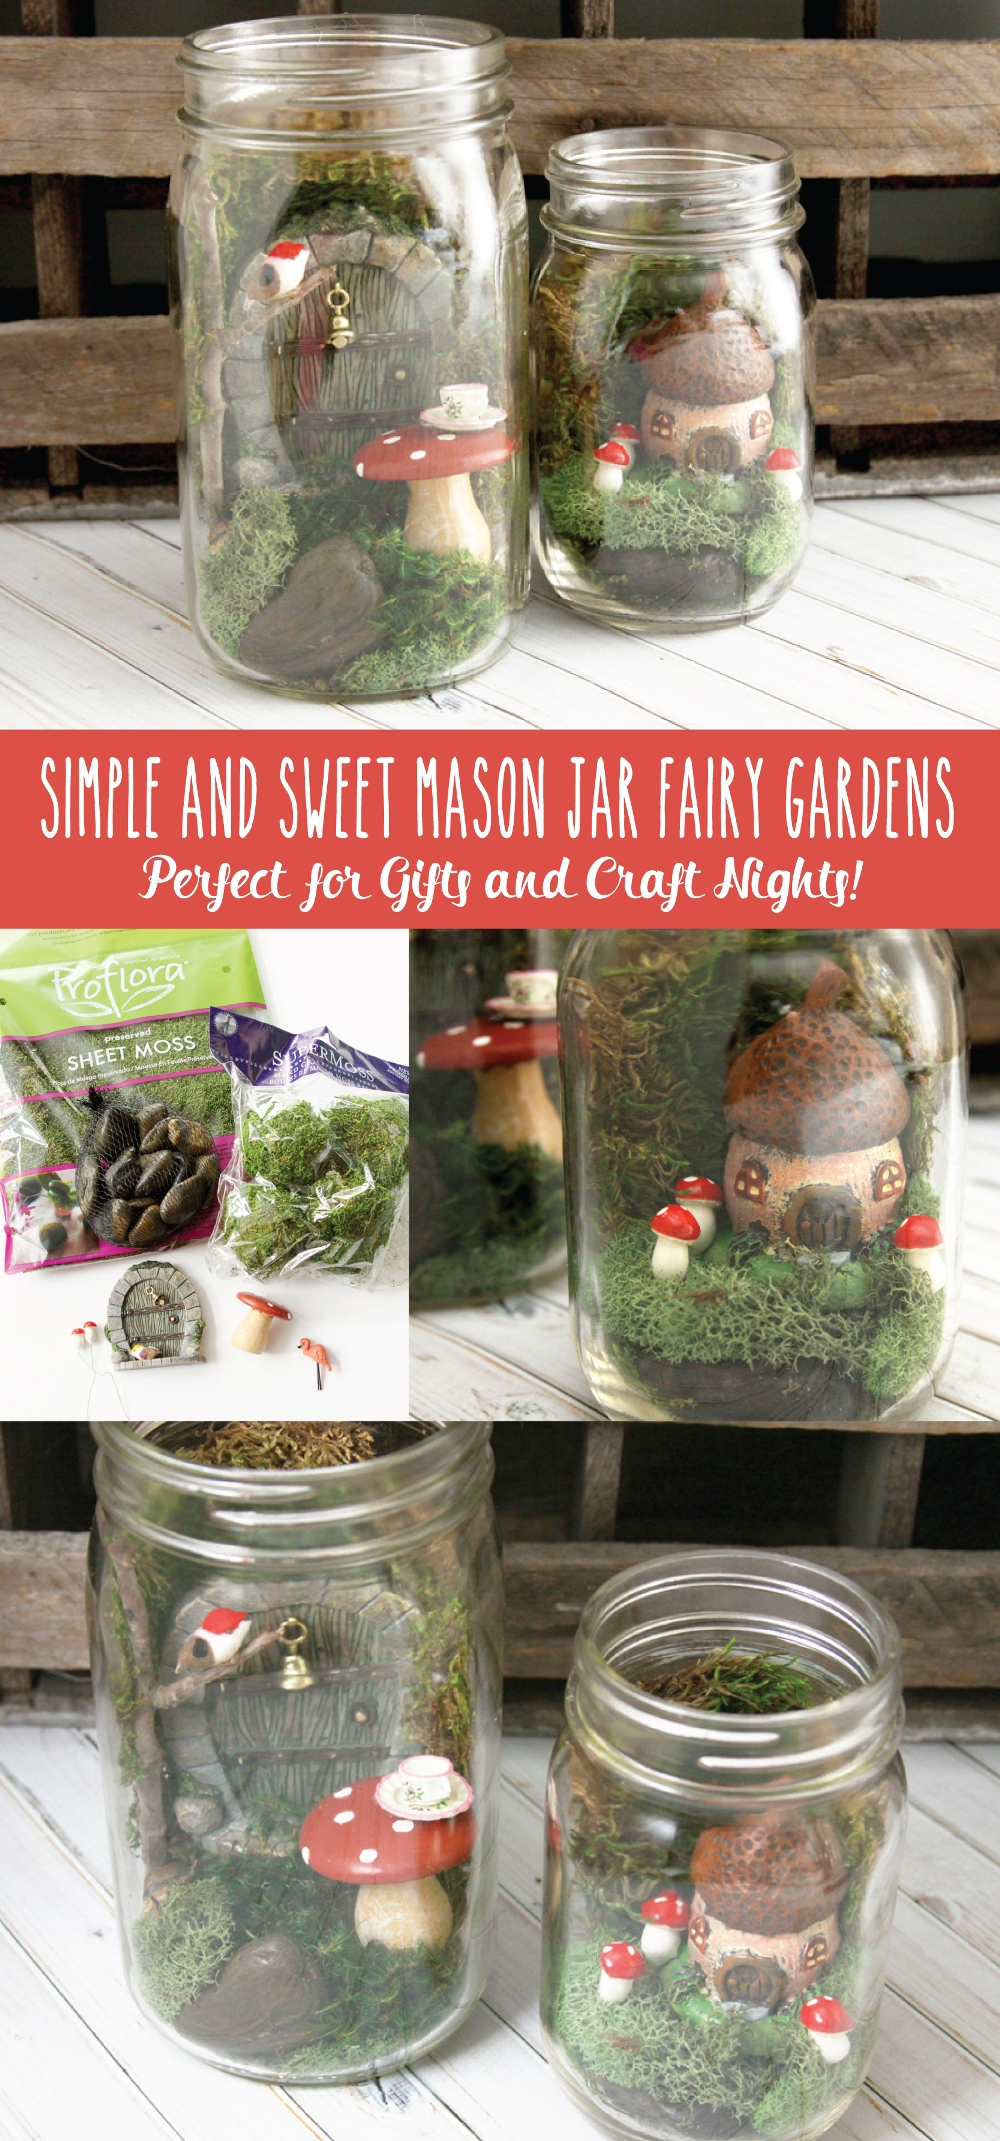 Simple and Sweet Mason Jar Fairy Gardens - these are so cute and so easy to do. They are perfect if you've been wanting to try Fairy Gardens!